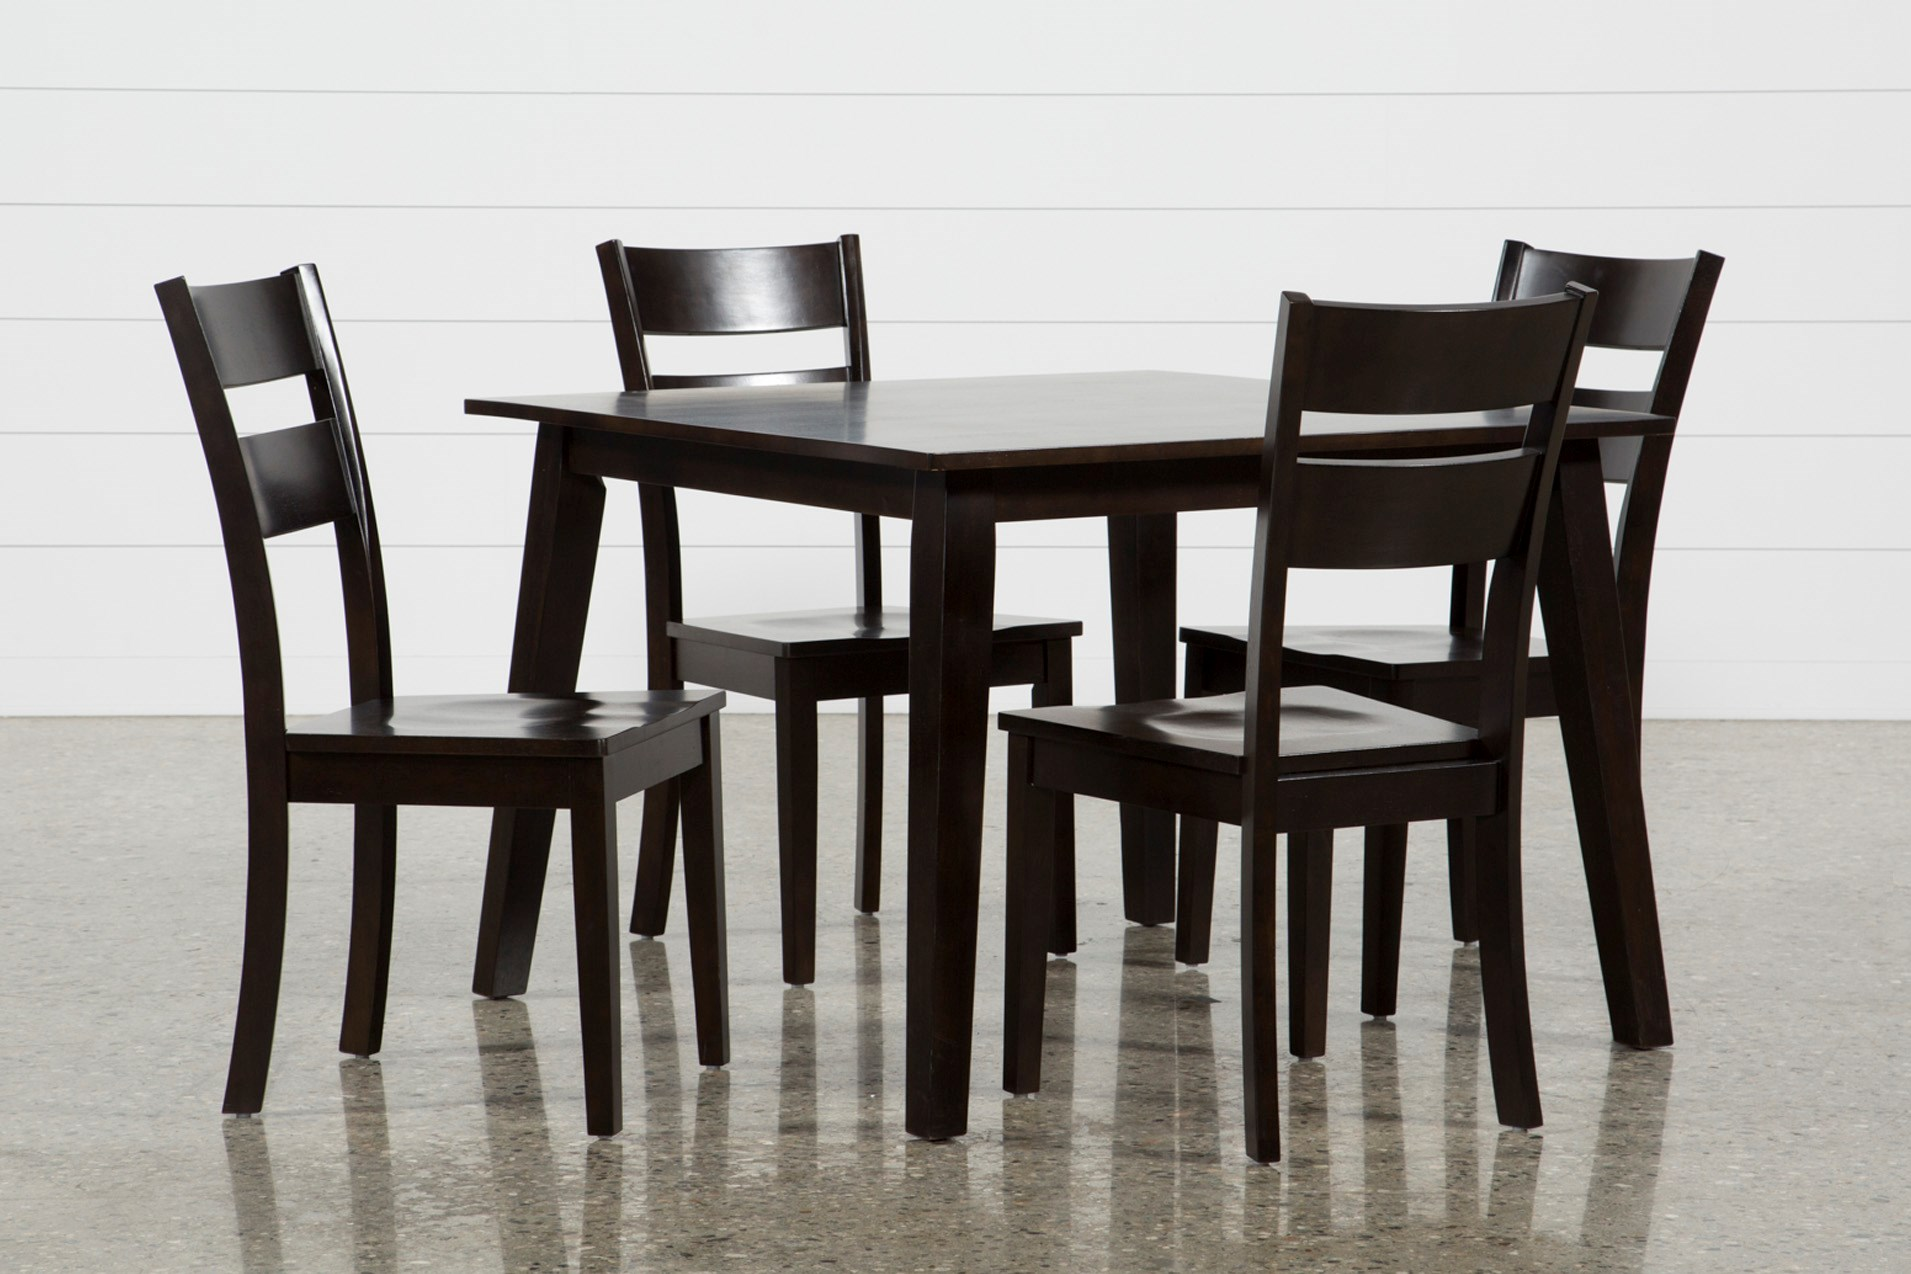 Mandy 5 Piece Espresso Square Dining Set Qty 1 Has Been Successfully Added To Your Cart